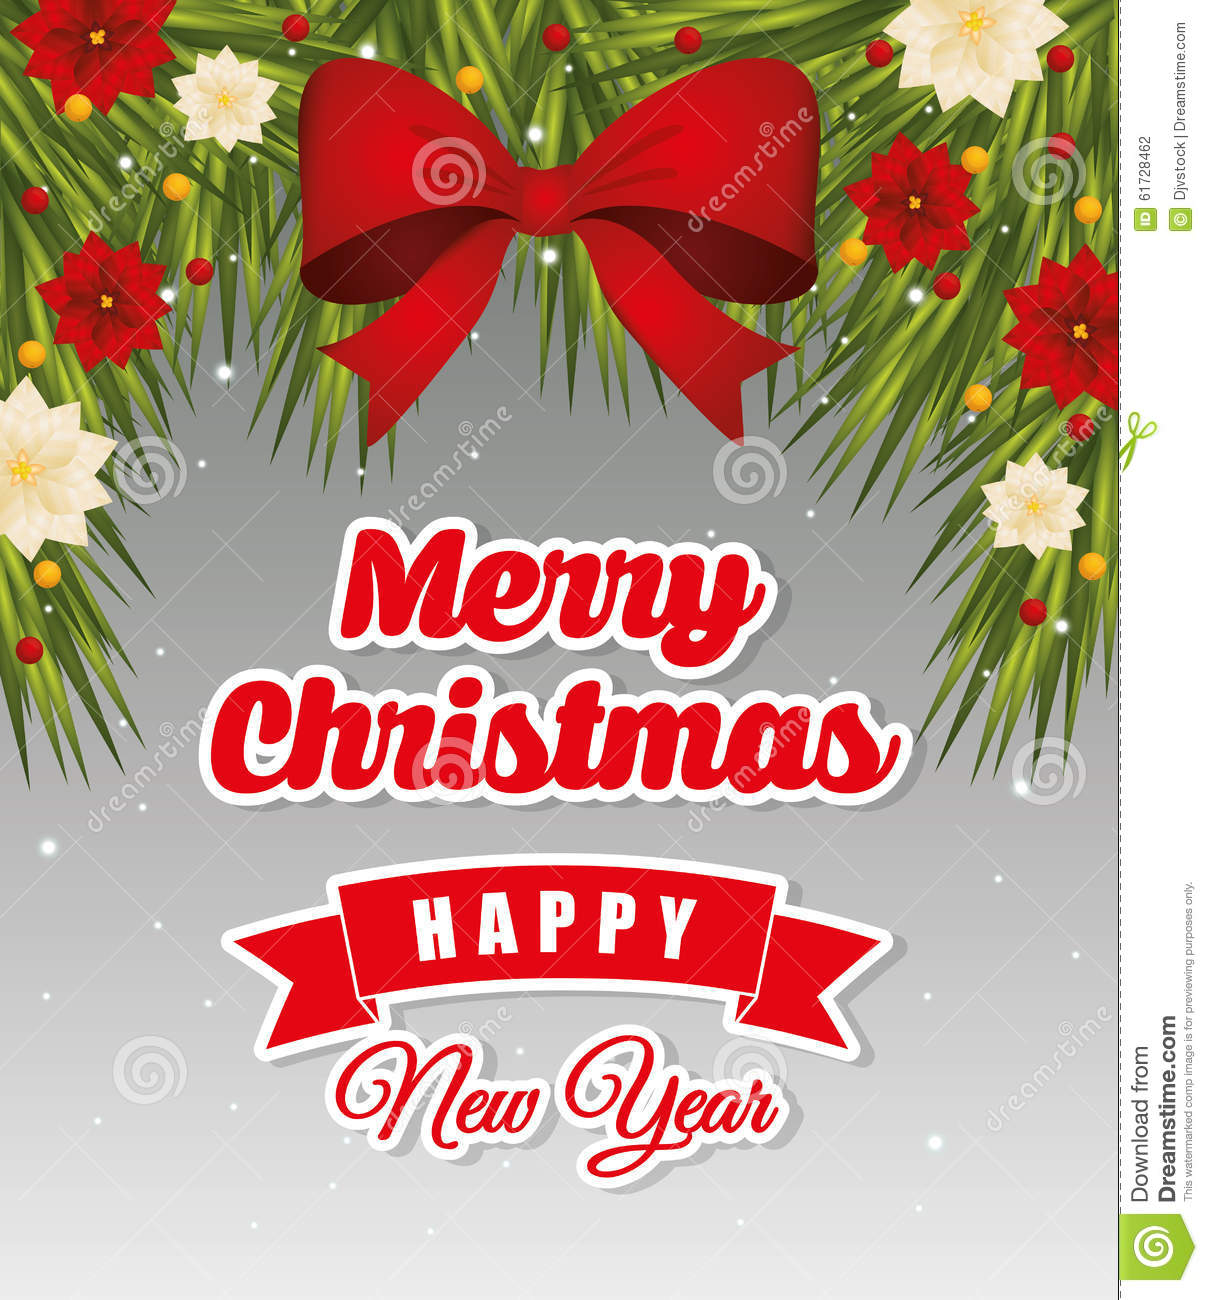 Merry Christmas Card.Happy Holidays And Merry Christmas Card Design Stock Vector